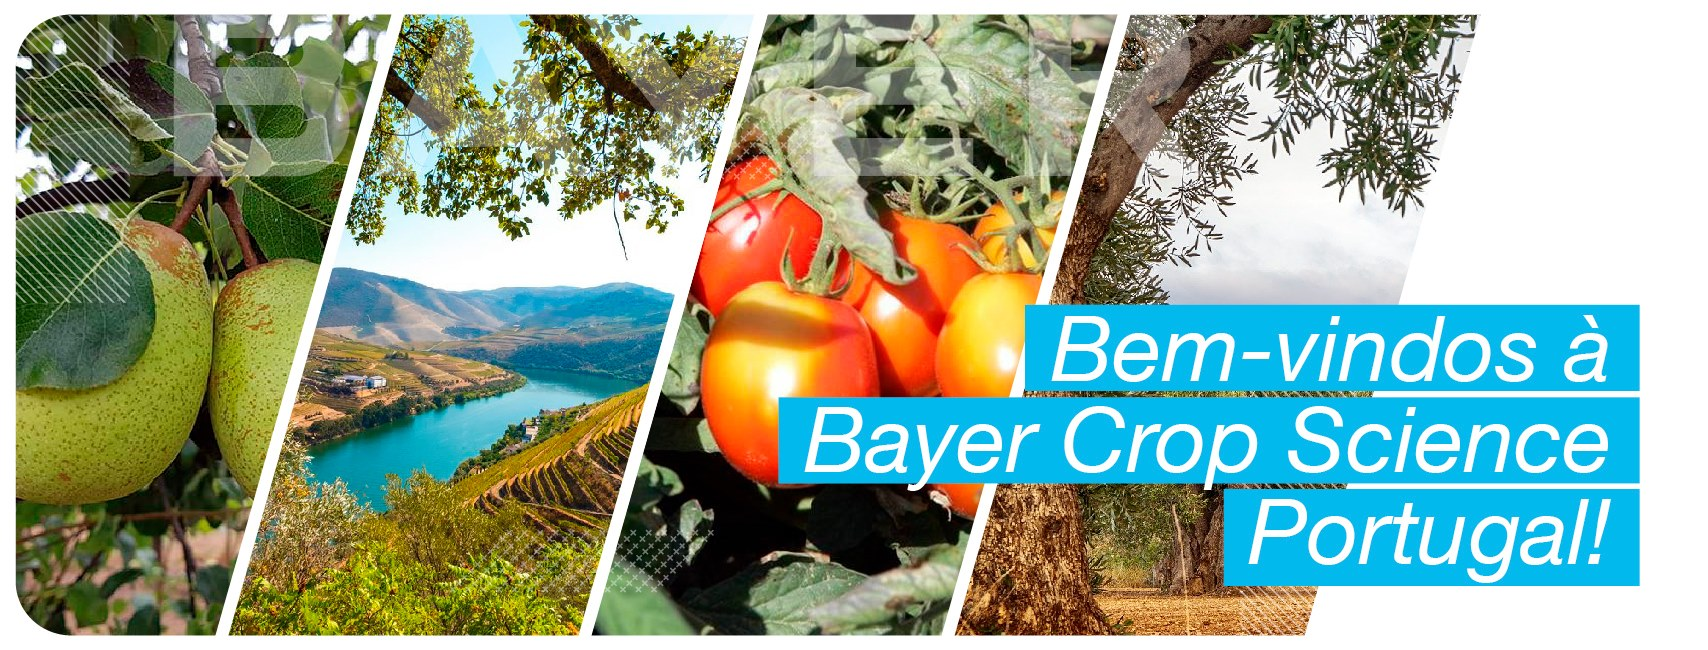 Bayer Crop Science Portugal